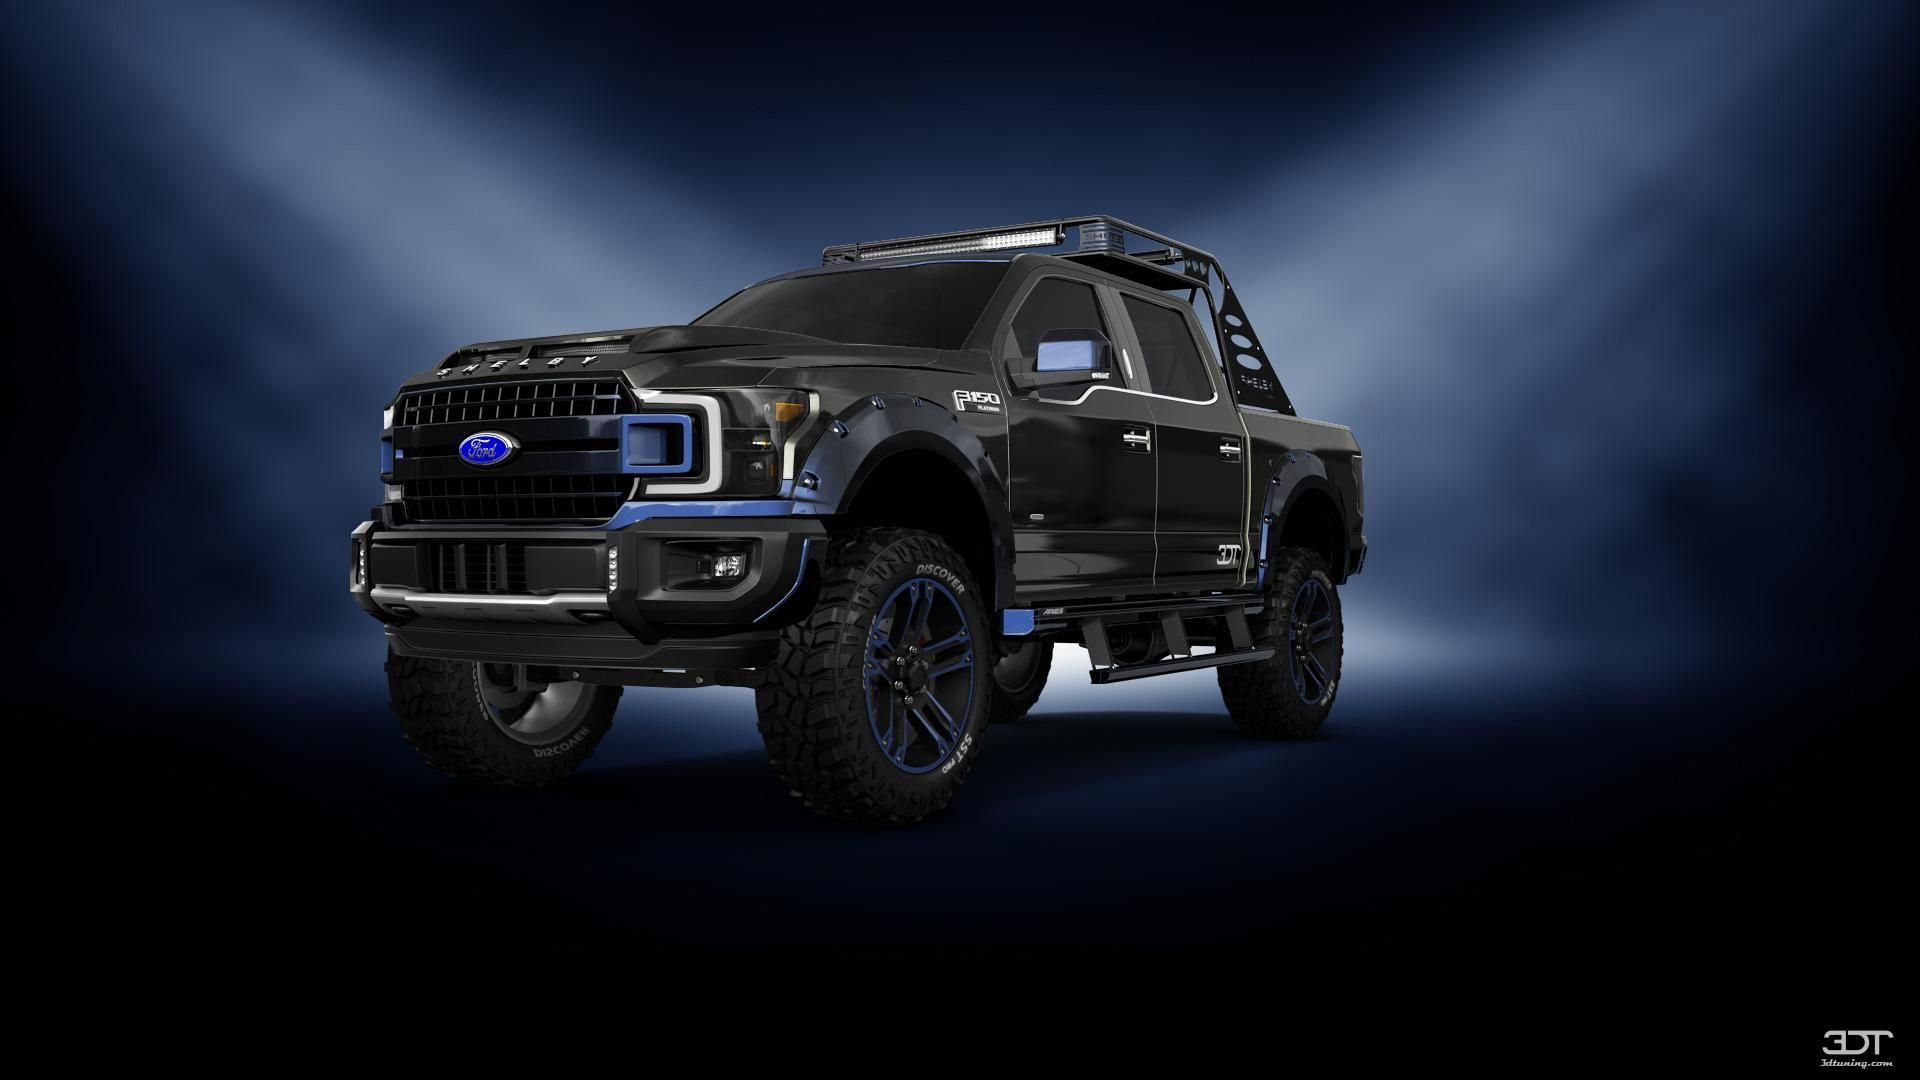 Pin by FD & CO on 3DTUNING (With images) Ford trucks